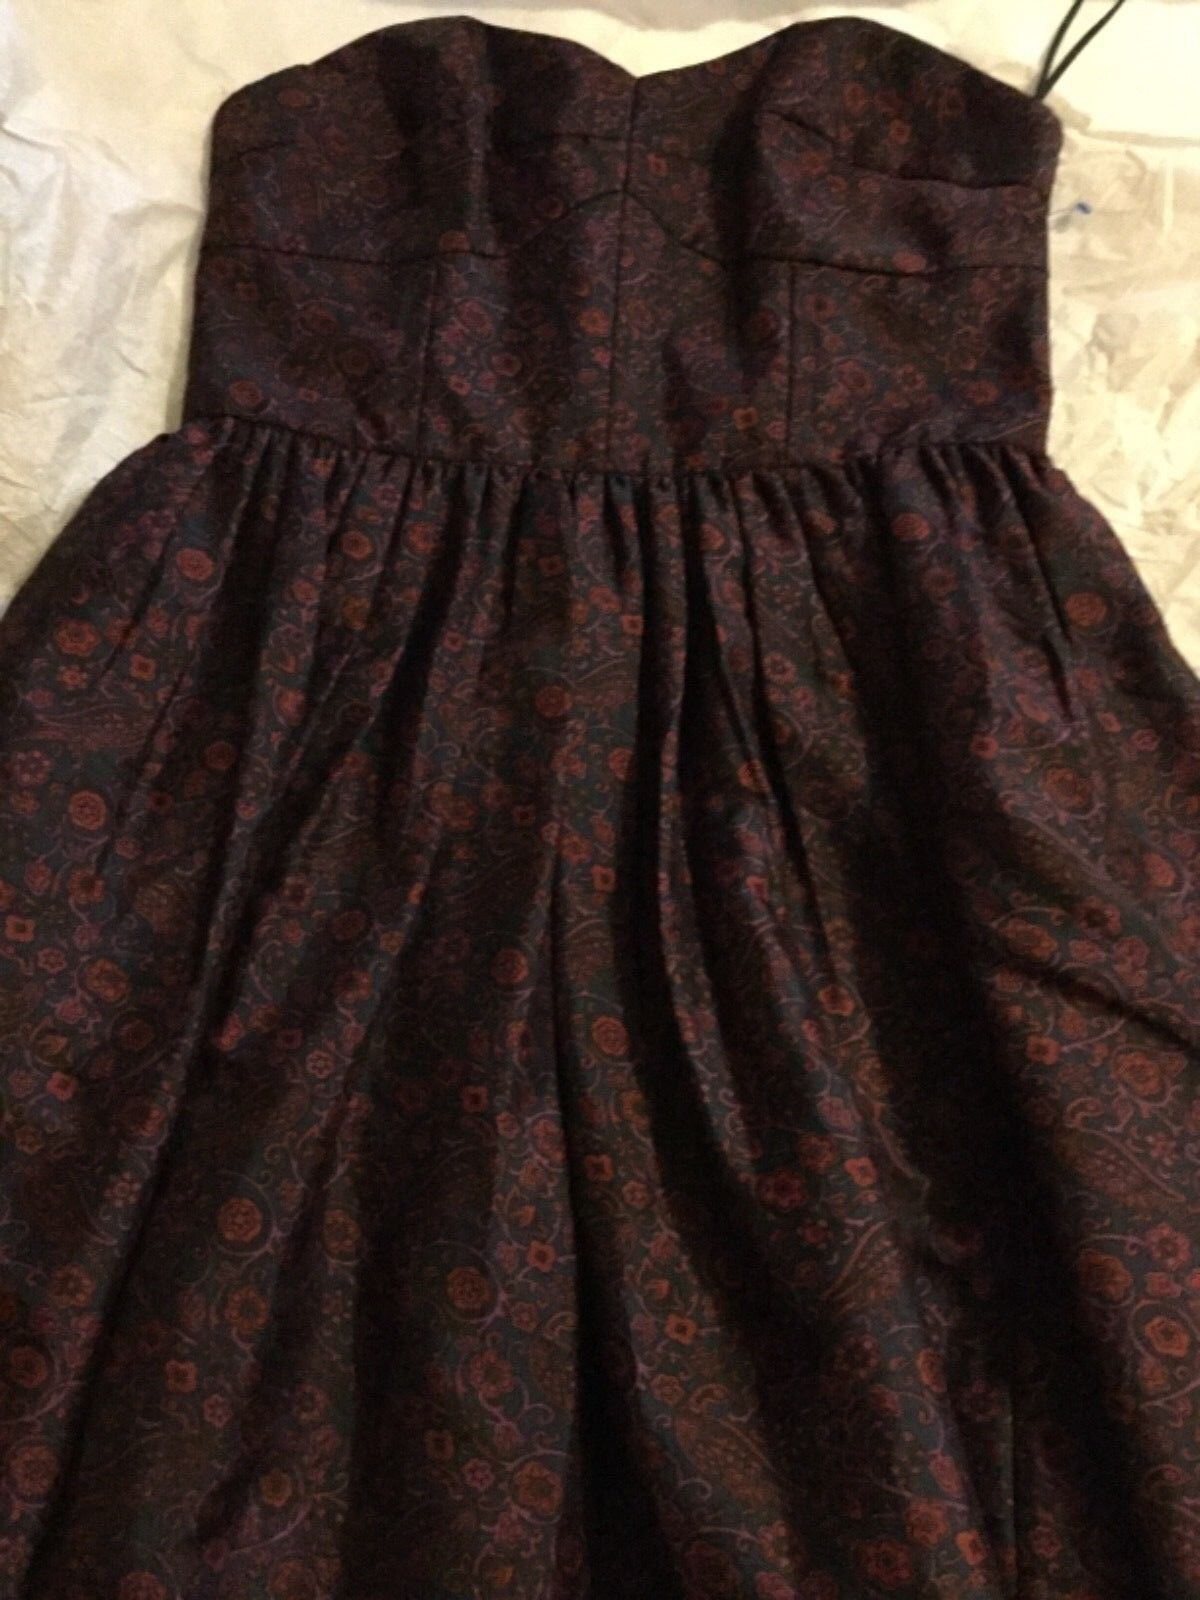 EXCELLENT CONDITION Jack Wills LIberty Print Bustier Dress -  US 6